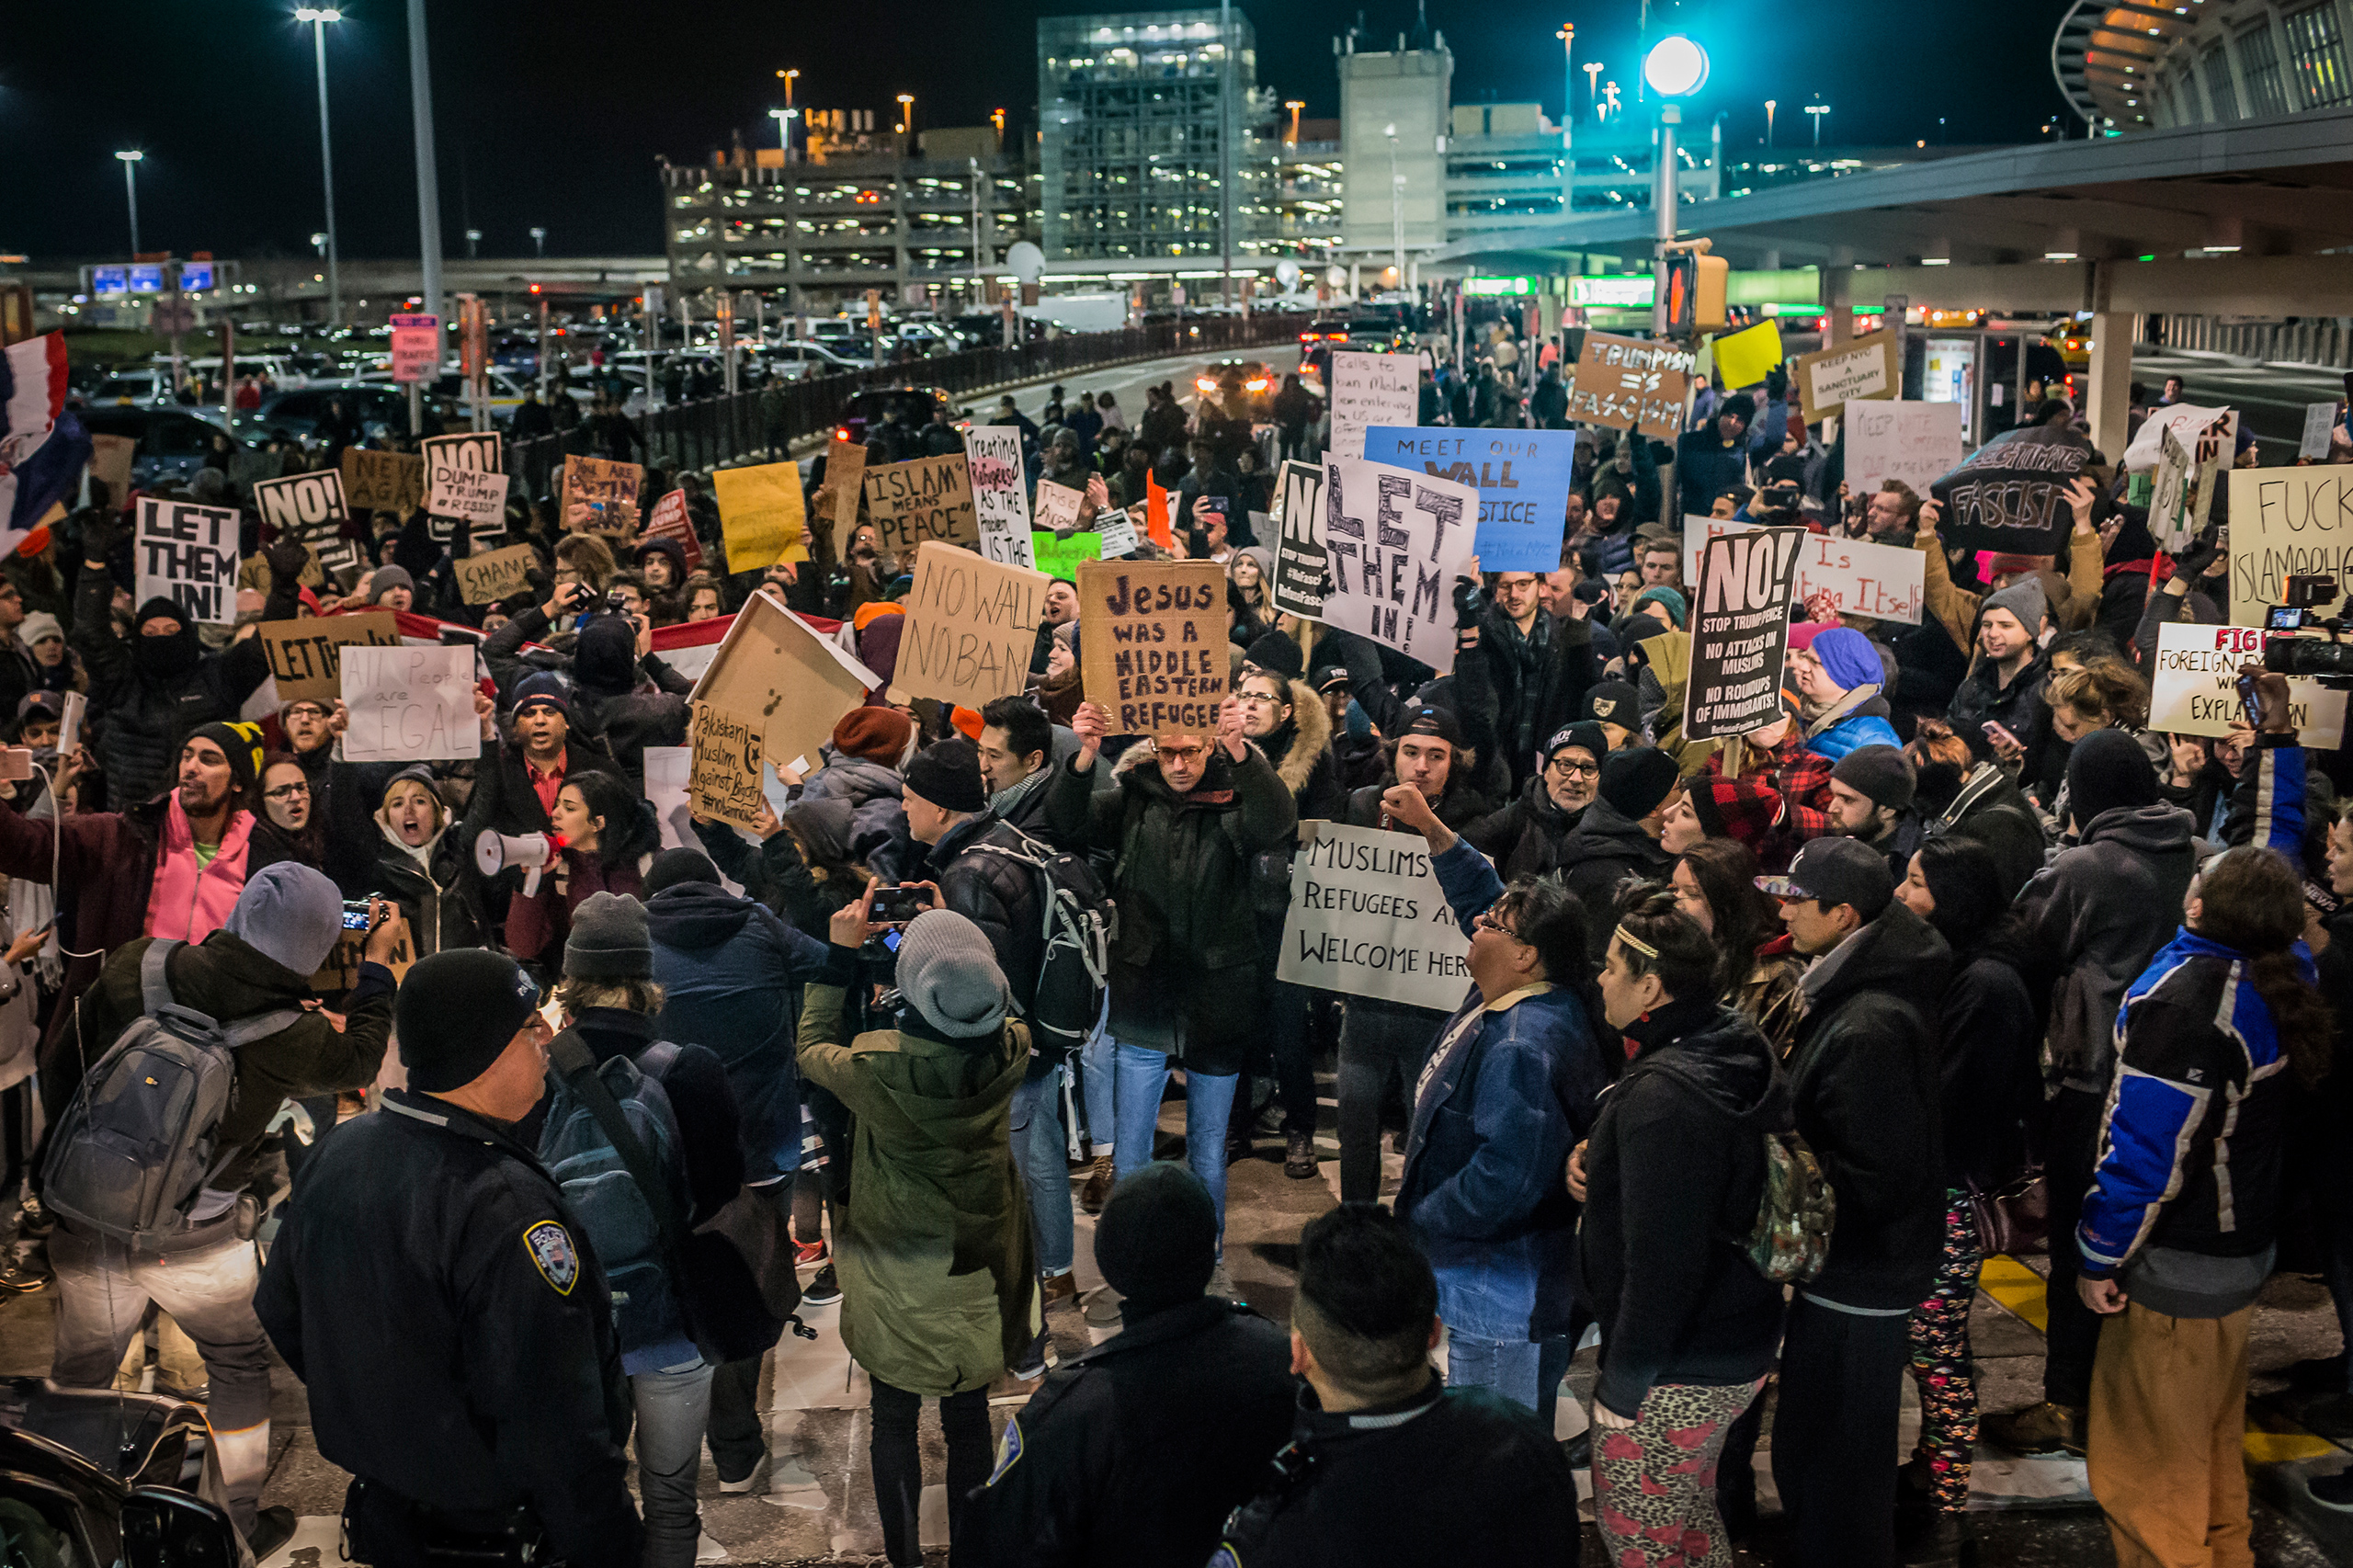 For over 8 hours on Jan. 28, 2017, thousands flooded into Terminal 4 at New York's John F. Kennedy International Airport, at times shutting down the hub while protesting Donald Trump's executive order banning Muslims from certain countries from traveling to the U.S. Around 8 p.m. that evening, the federal court for the Eastern District of New York issued an emergency stay halting the ban.